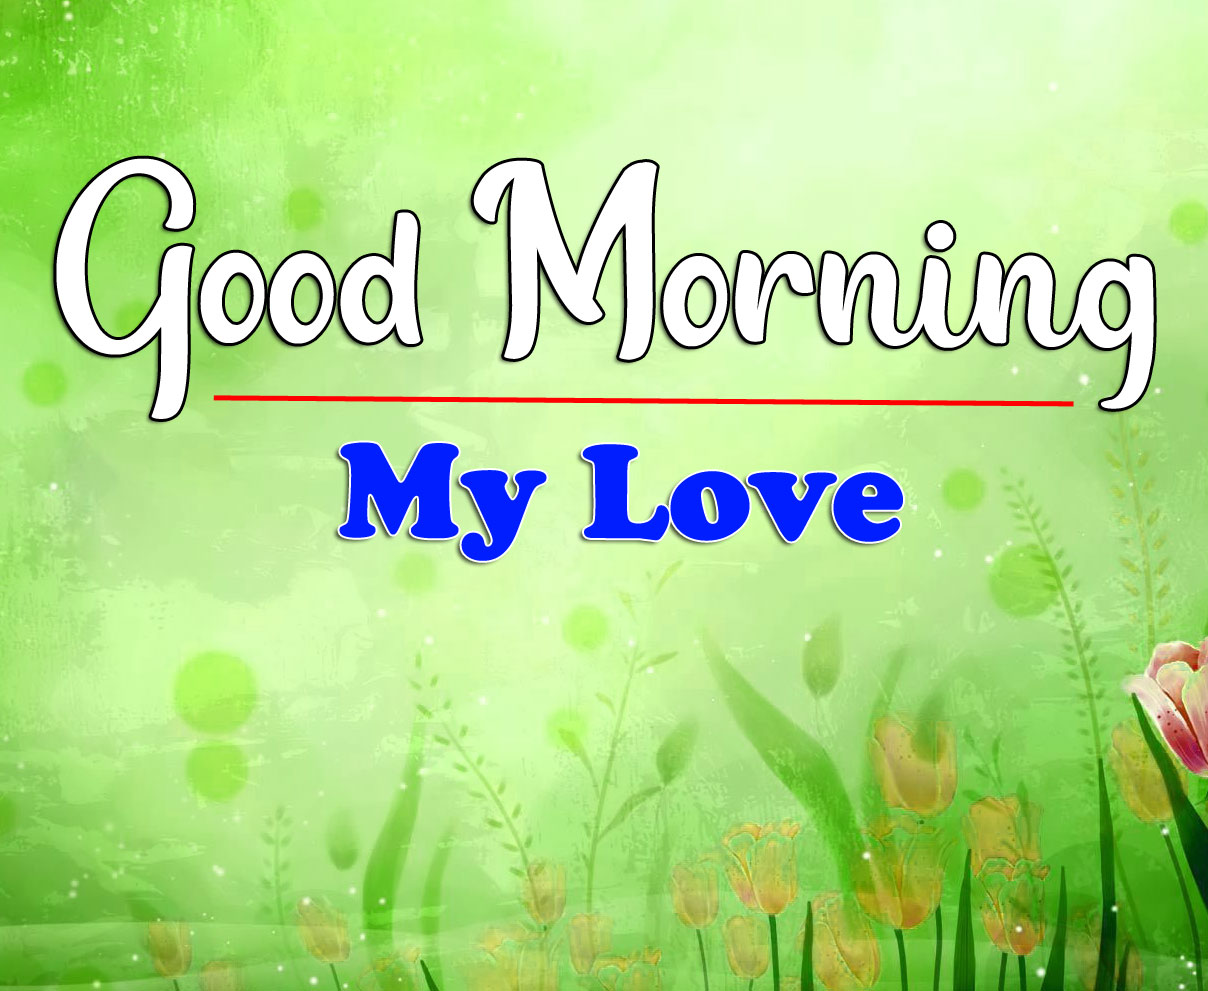 Best My Love HD Latest Good Morning Pics Images